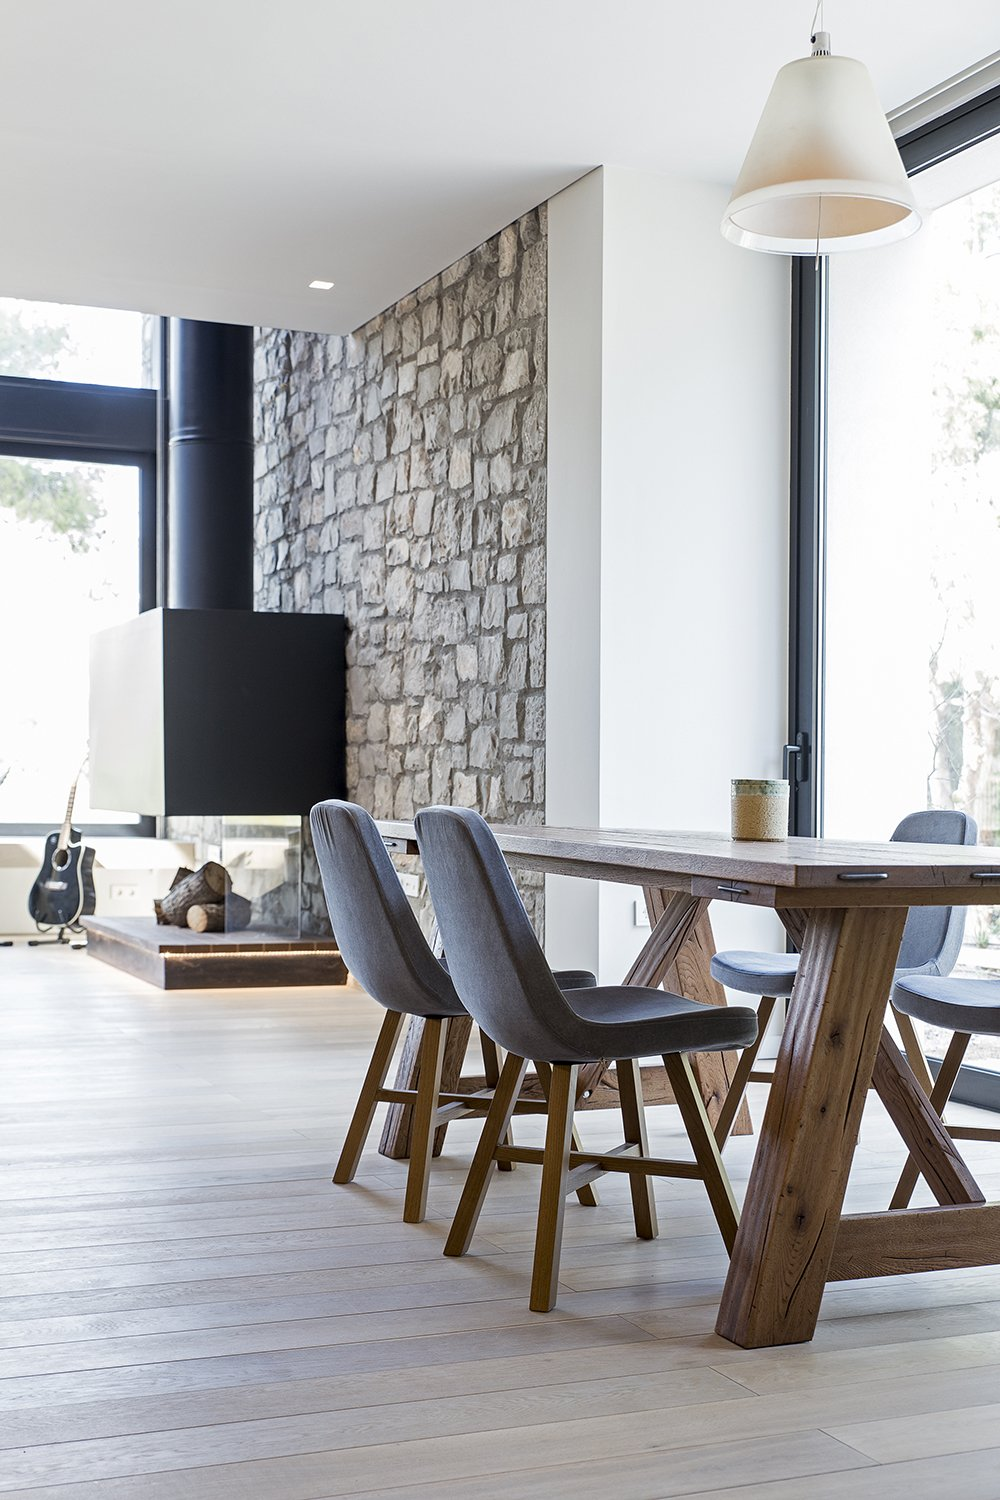 The natural light floods the space throughout the day